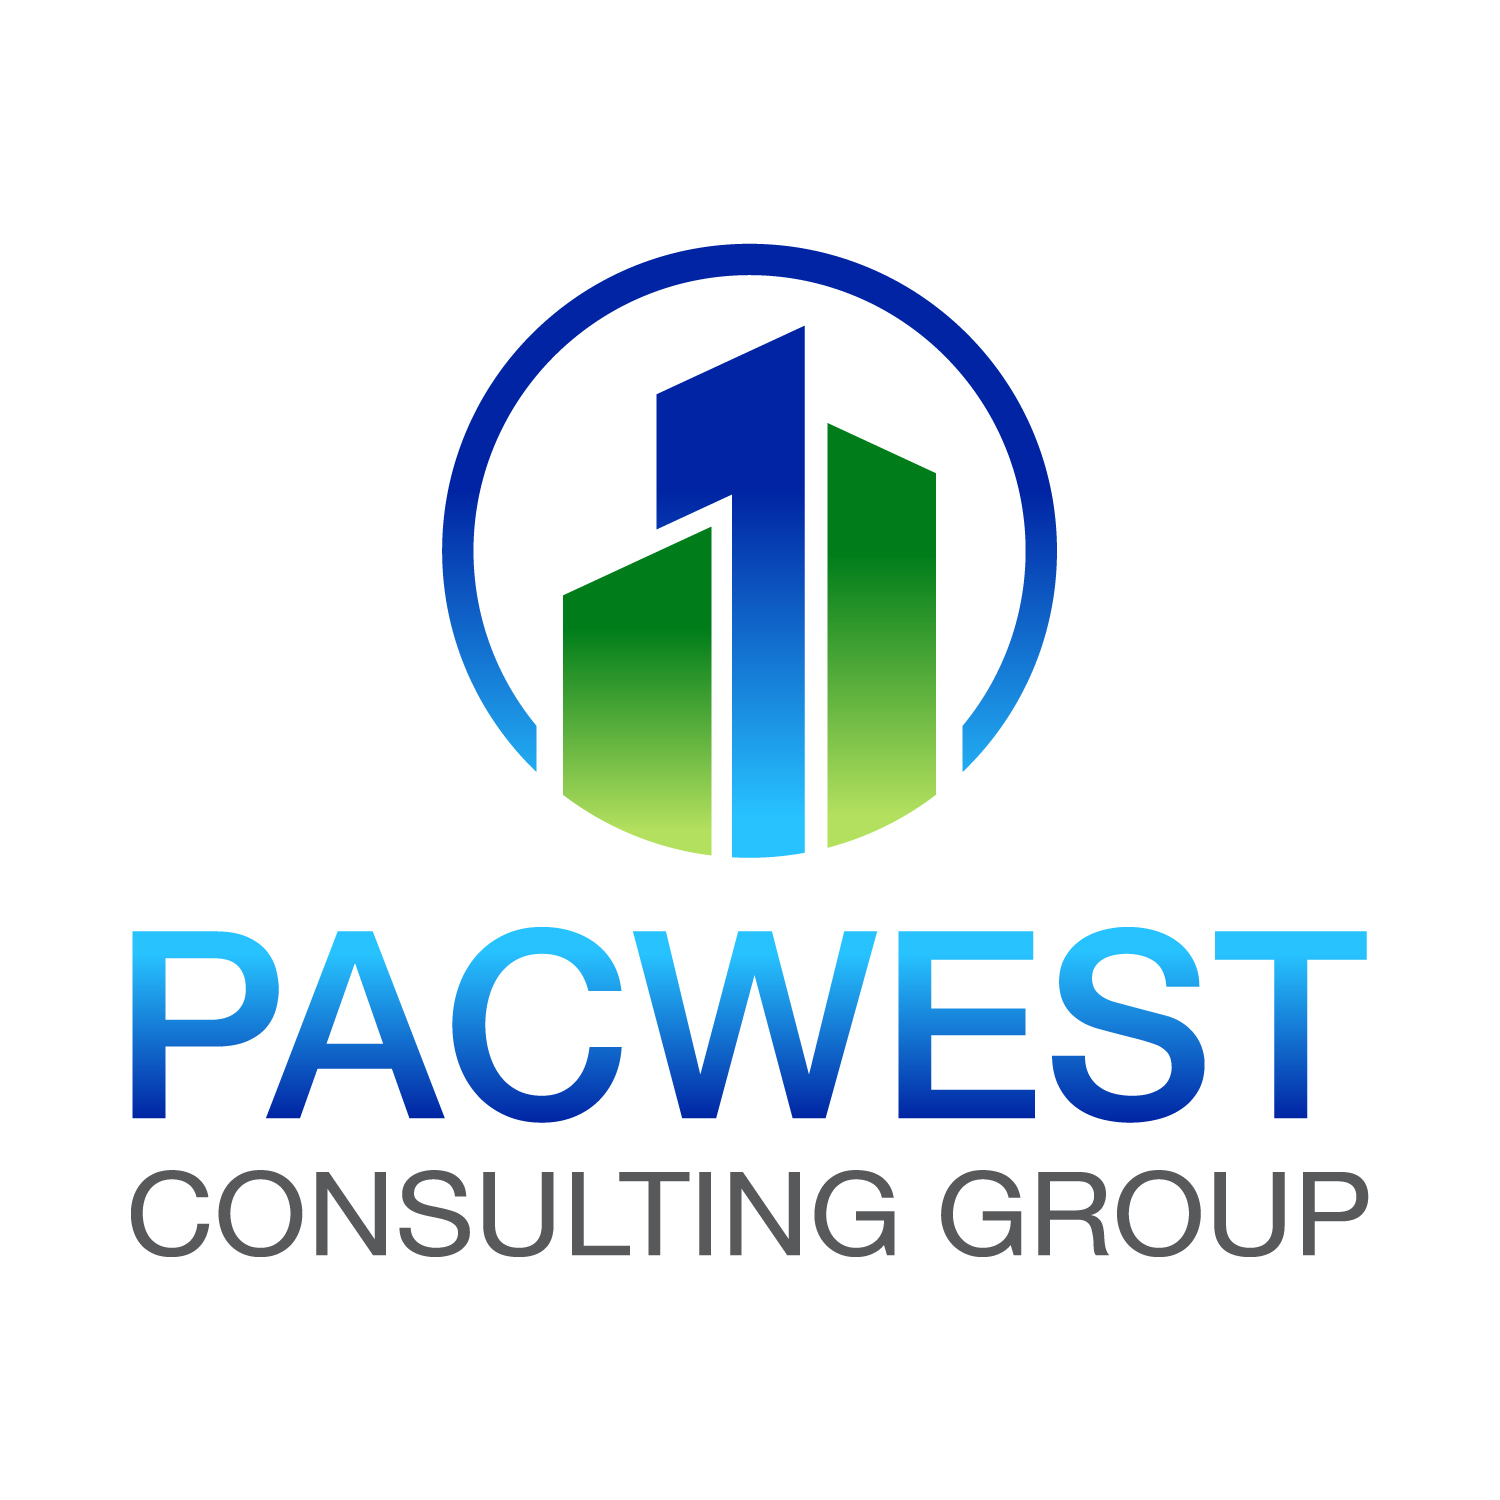 Logo Design by Karlo Garcia - Entry No. 39 in the Logo Design Contest Imaginative Logo Design for Pacwest Consulting Group.